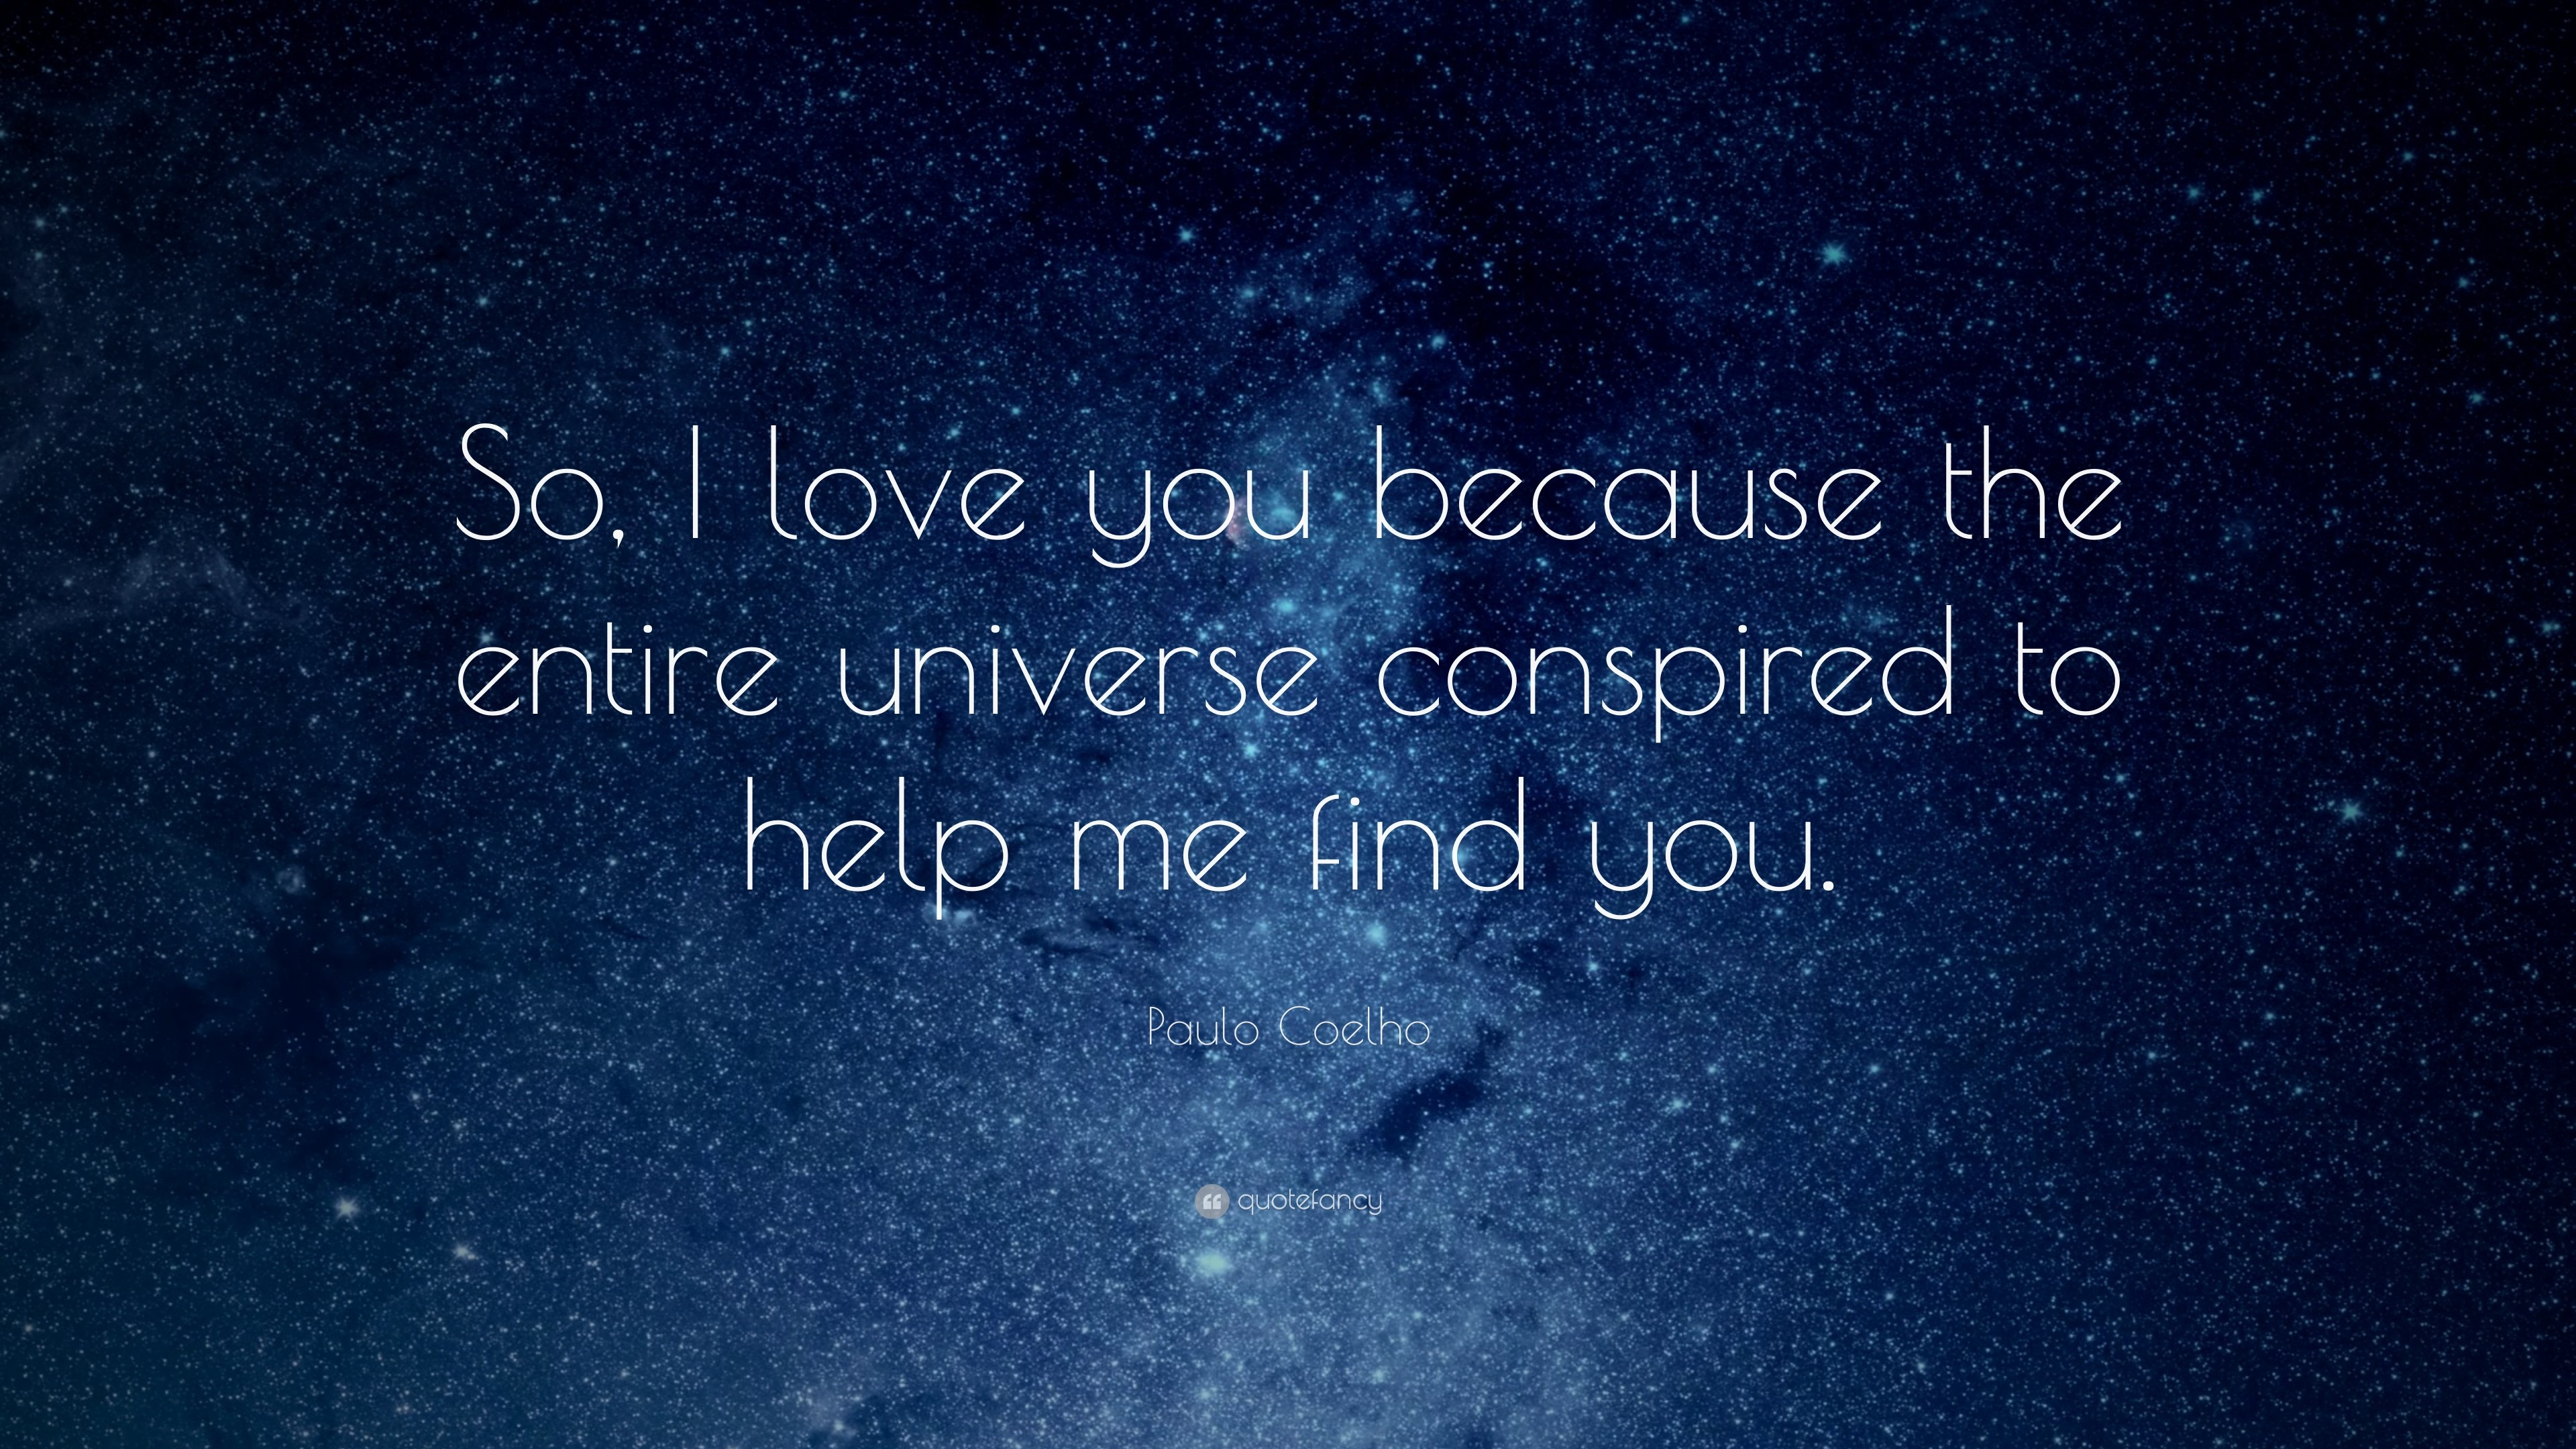 Love Quotes Wallpapers For Mobile: Love Quotes Backgrounds ·①